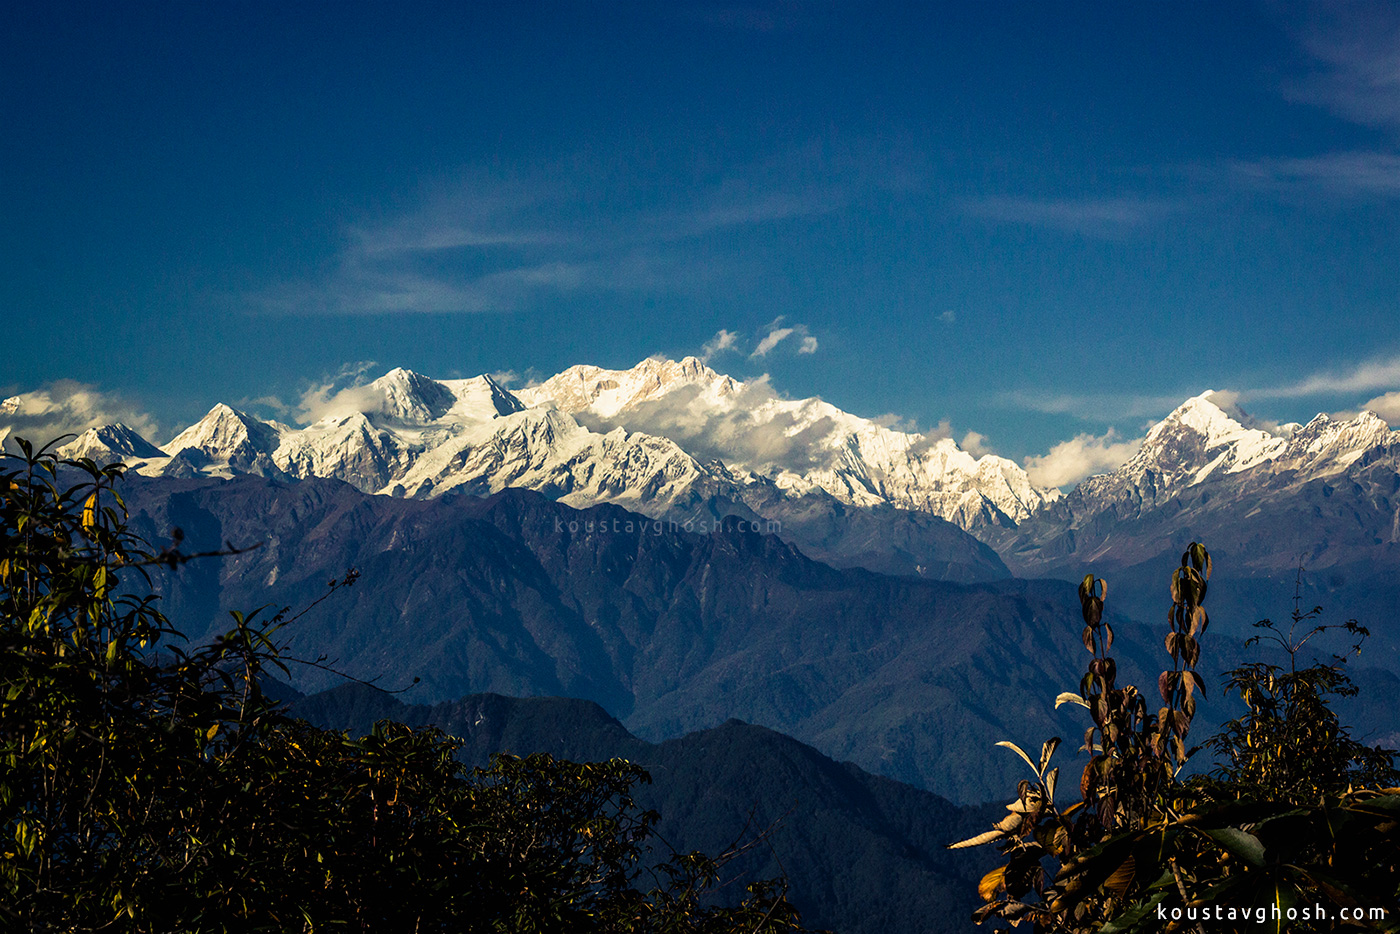 I was standing in front of the third highest mountain in the world, the Kanchenjungha